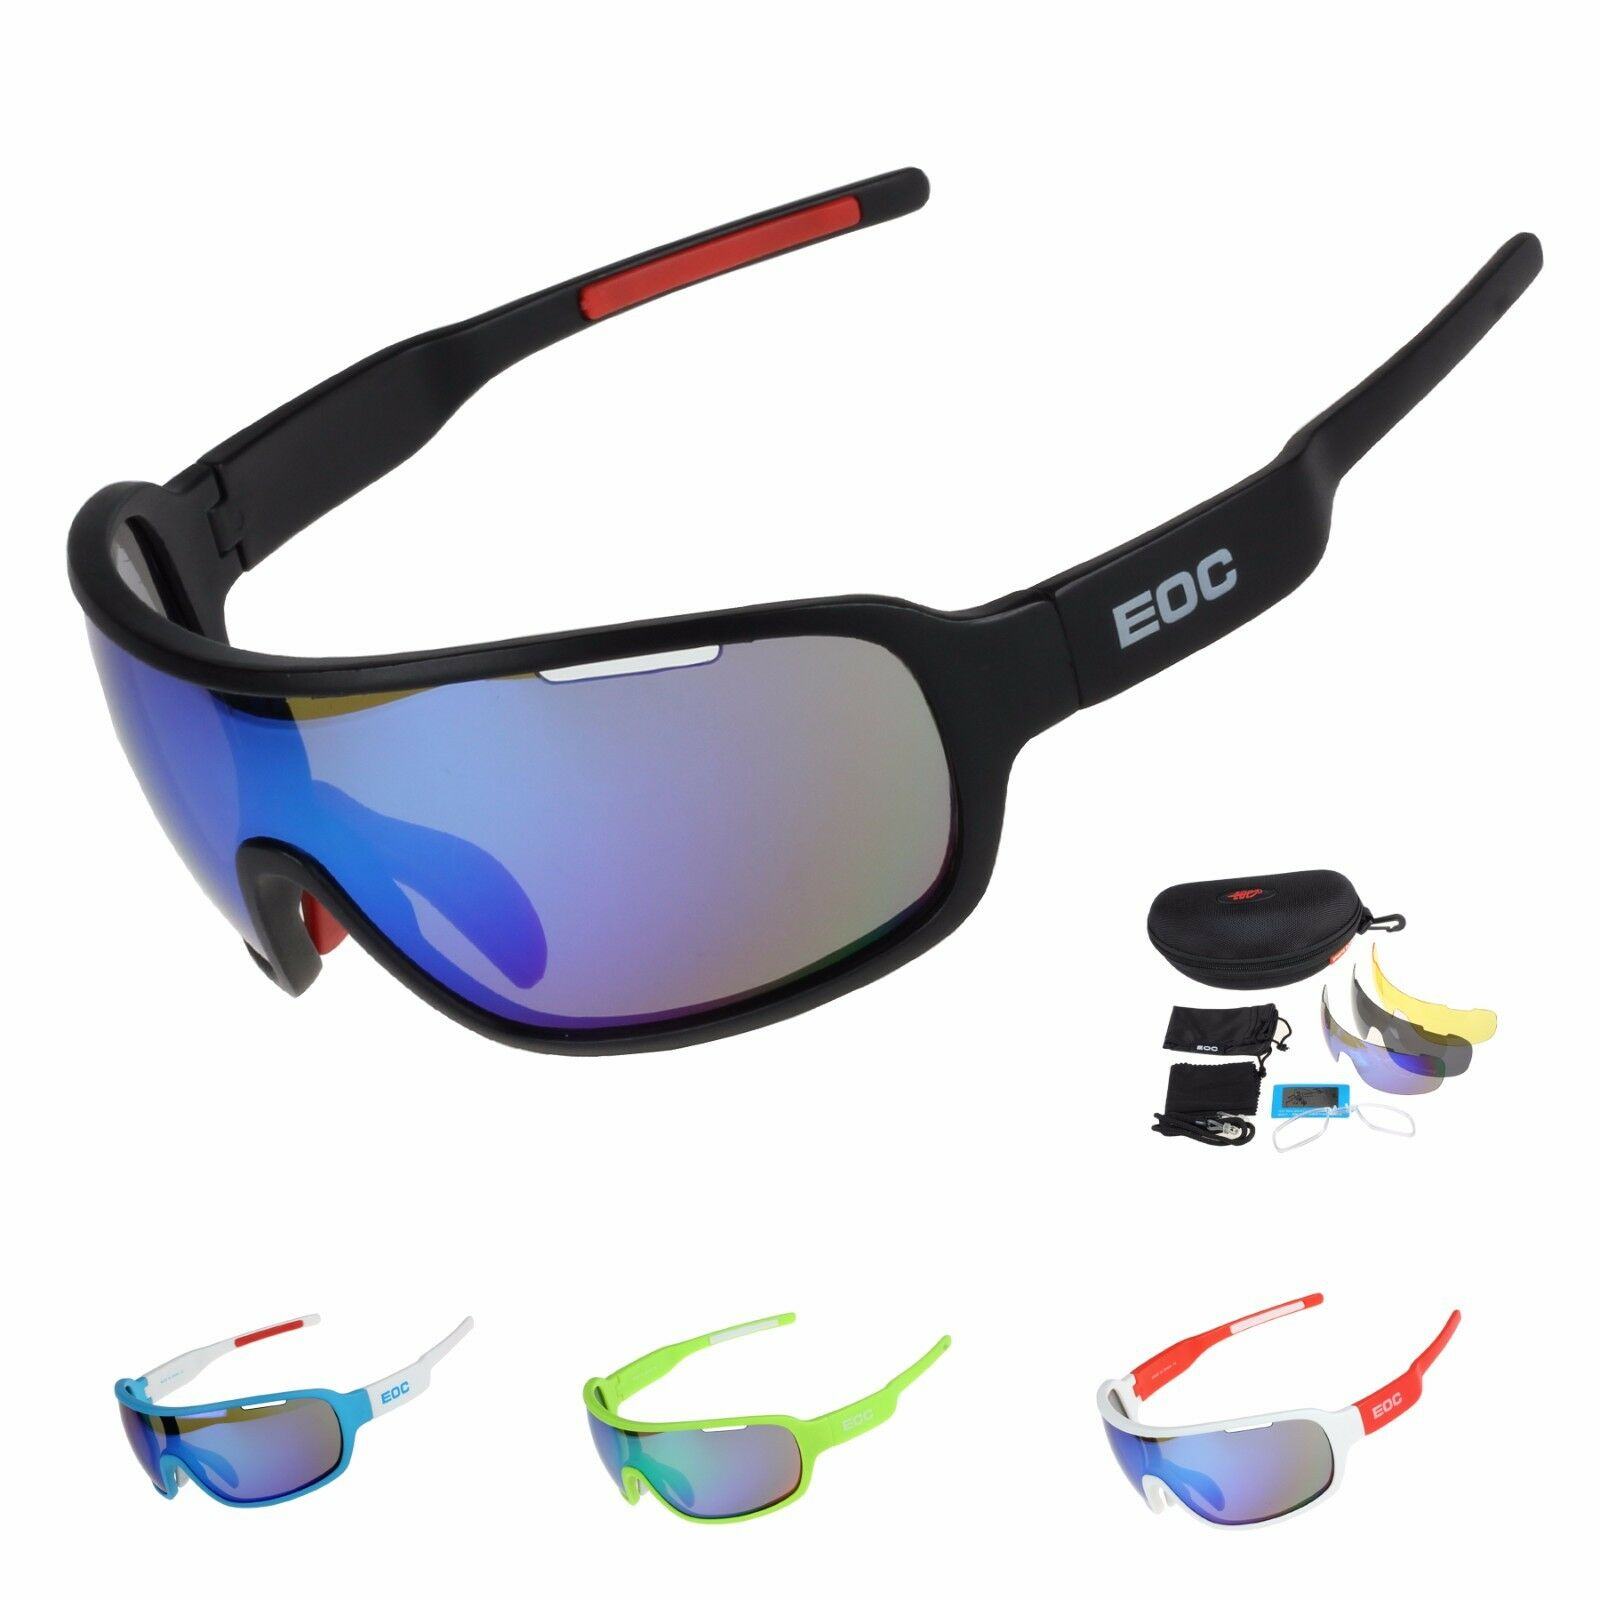 068bd074e0ae New Polarized Cycling Glasses Bike Goggles Bicycle Sunglasses Eyewear UV400  US for sale online